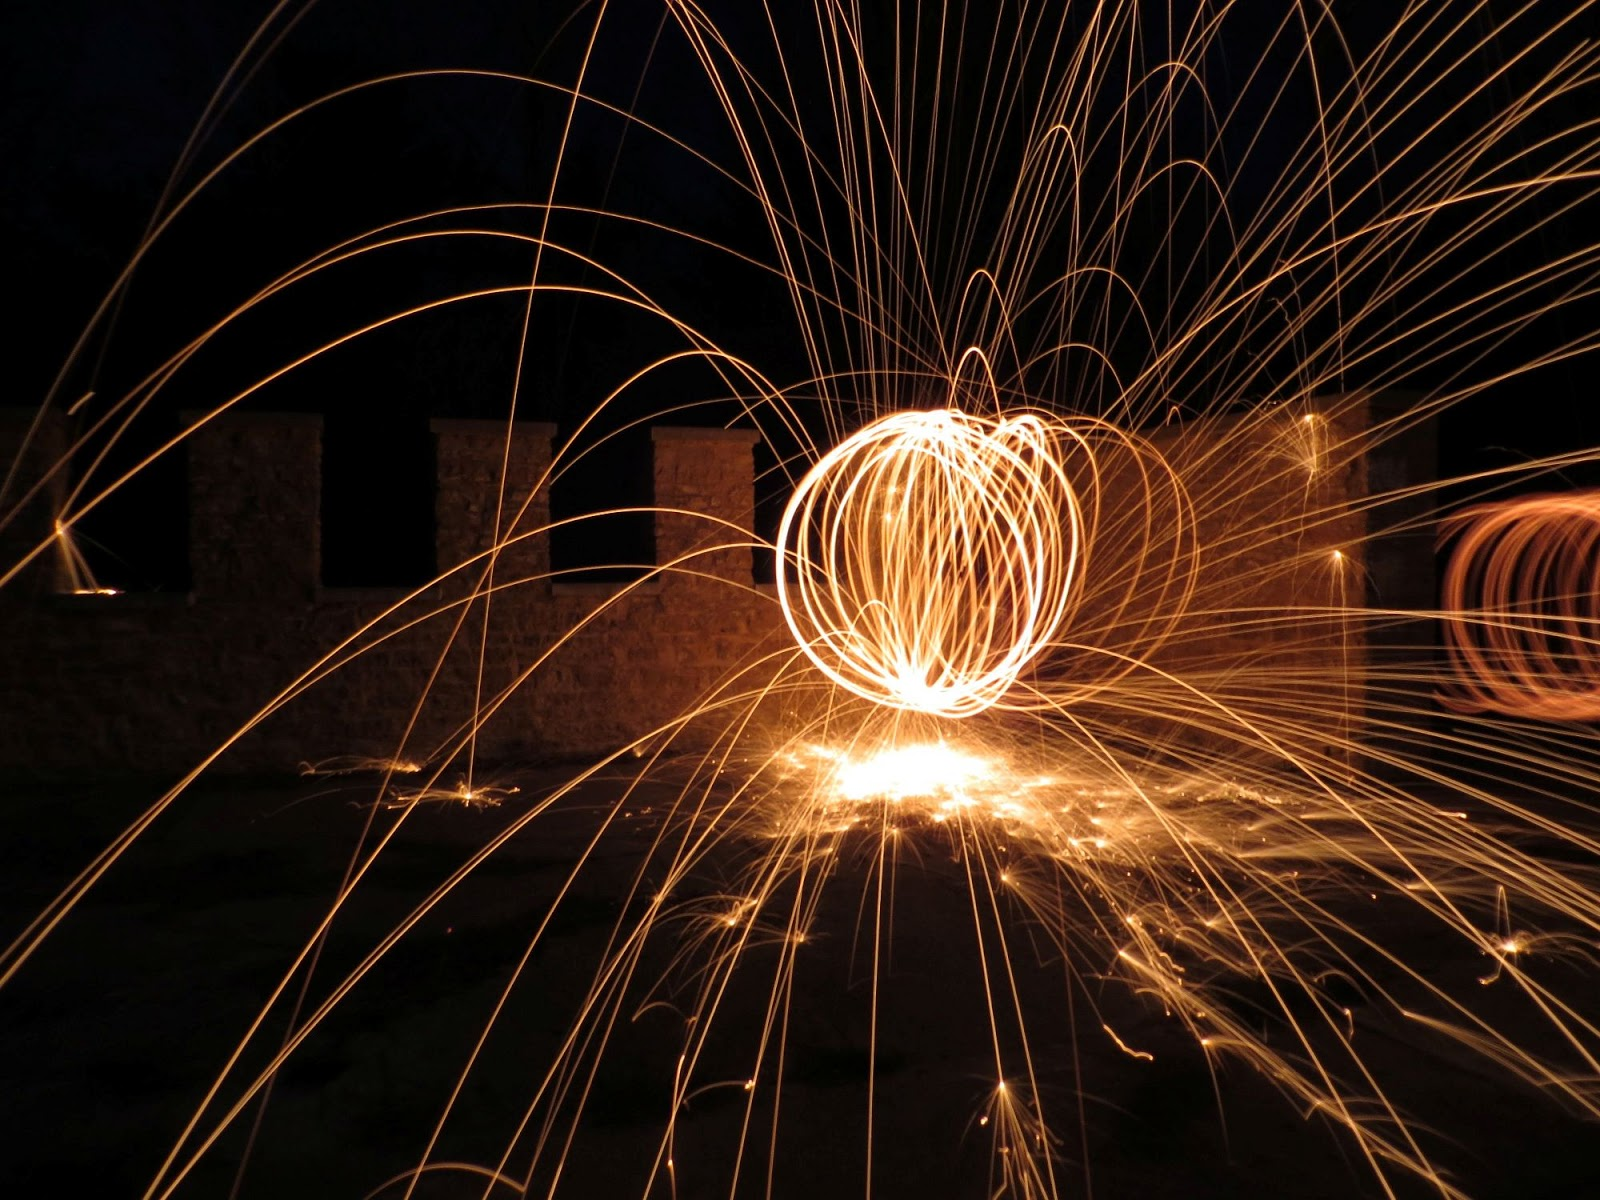 steel wool photography, photography, steel wool, spinning fire, how to, long exposure photography, night photography